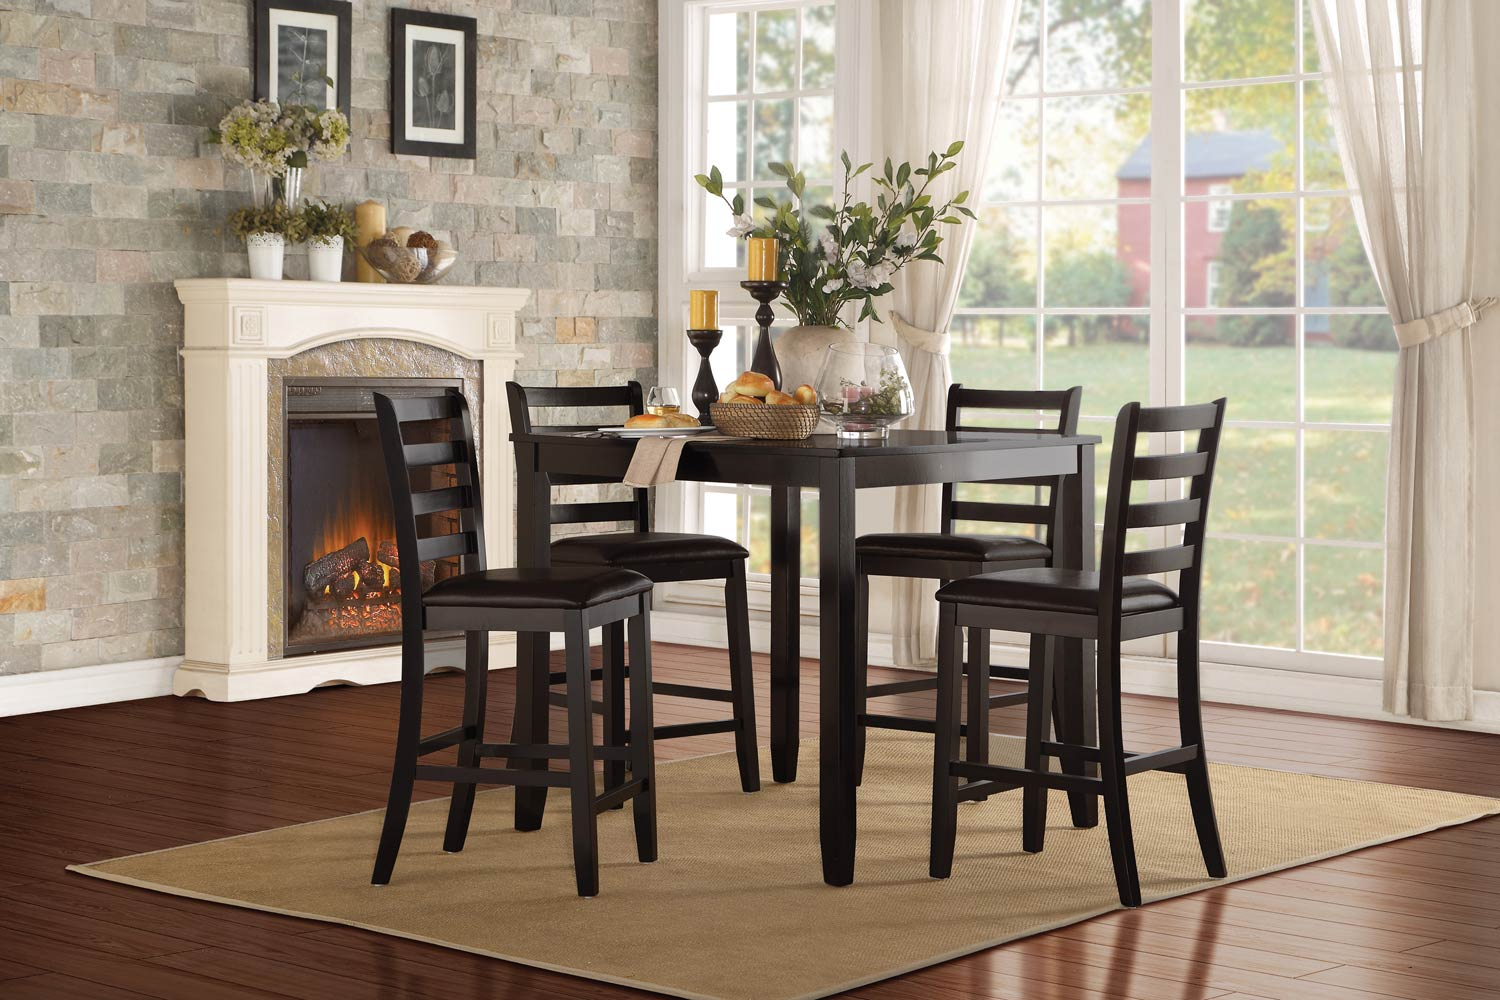 Homelegance Trask 5-Piece Counter Height Dining Set - Black